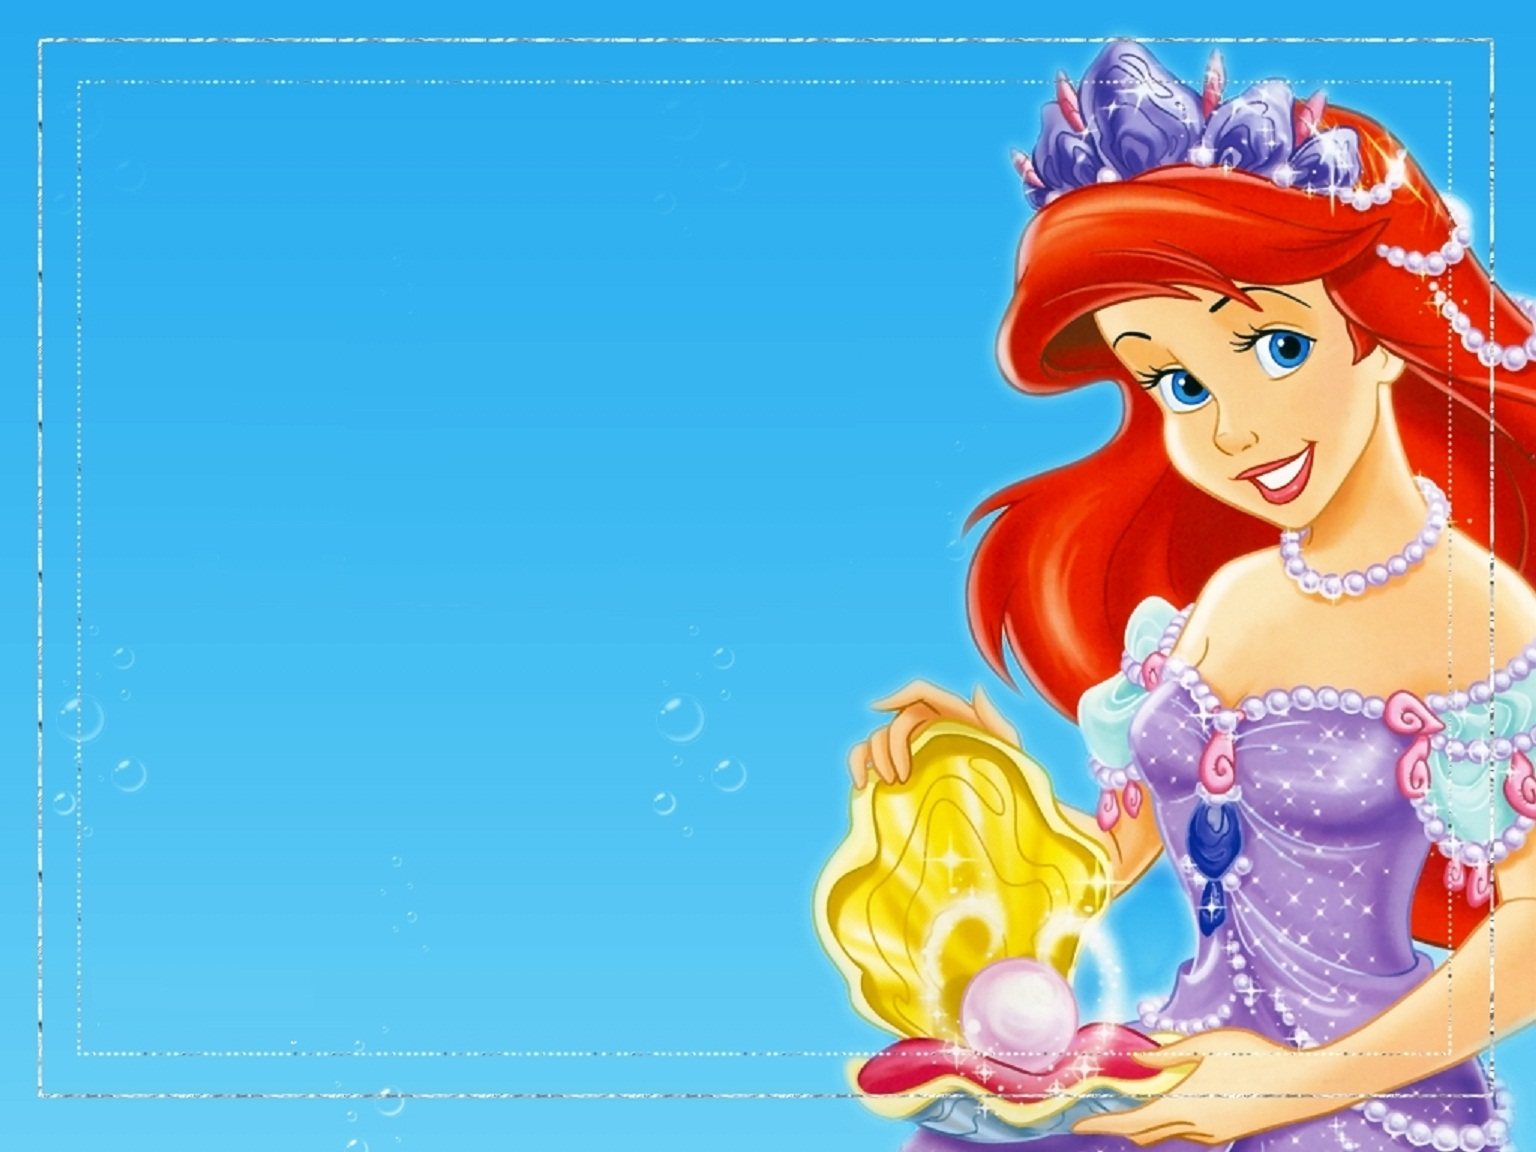 Disney HD Wallpapers: Walt Disney Princess Ariel HD Wallpapers